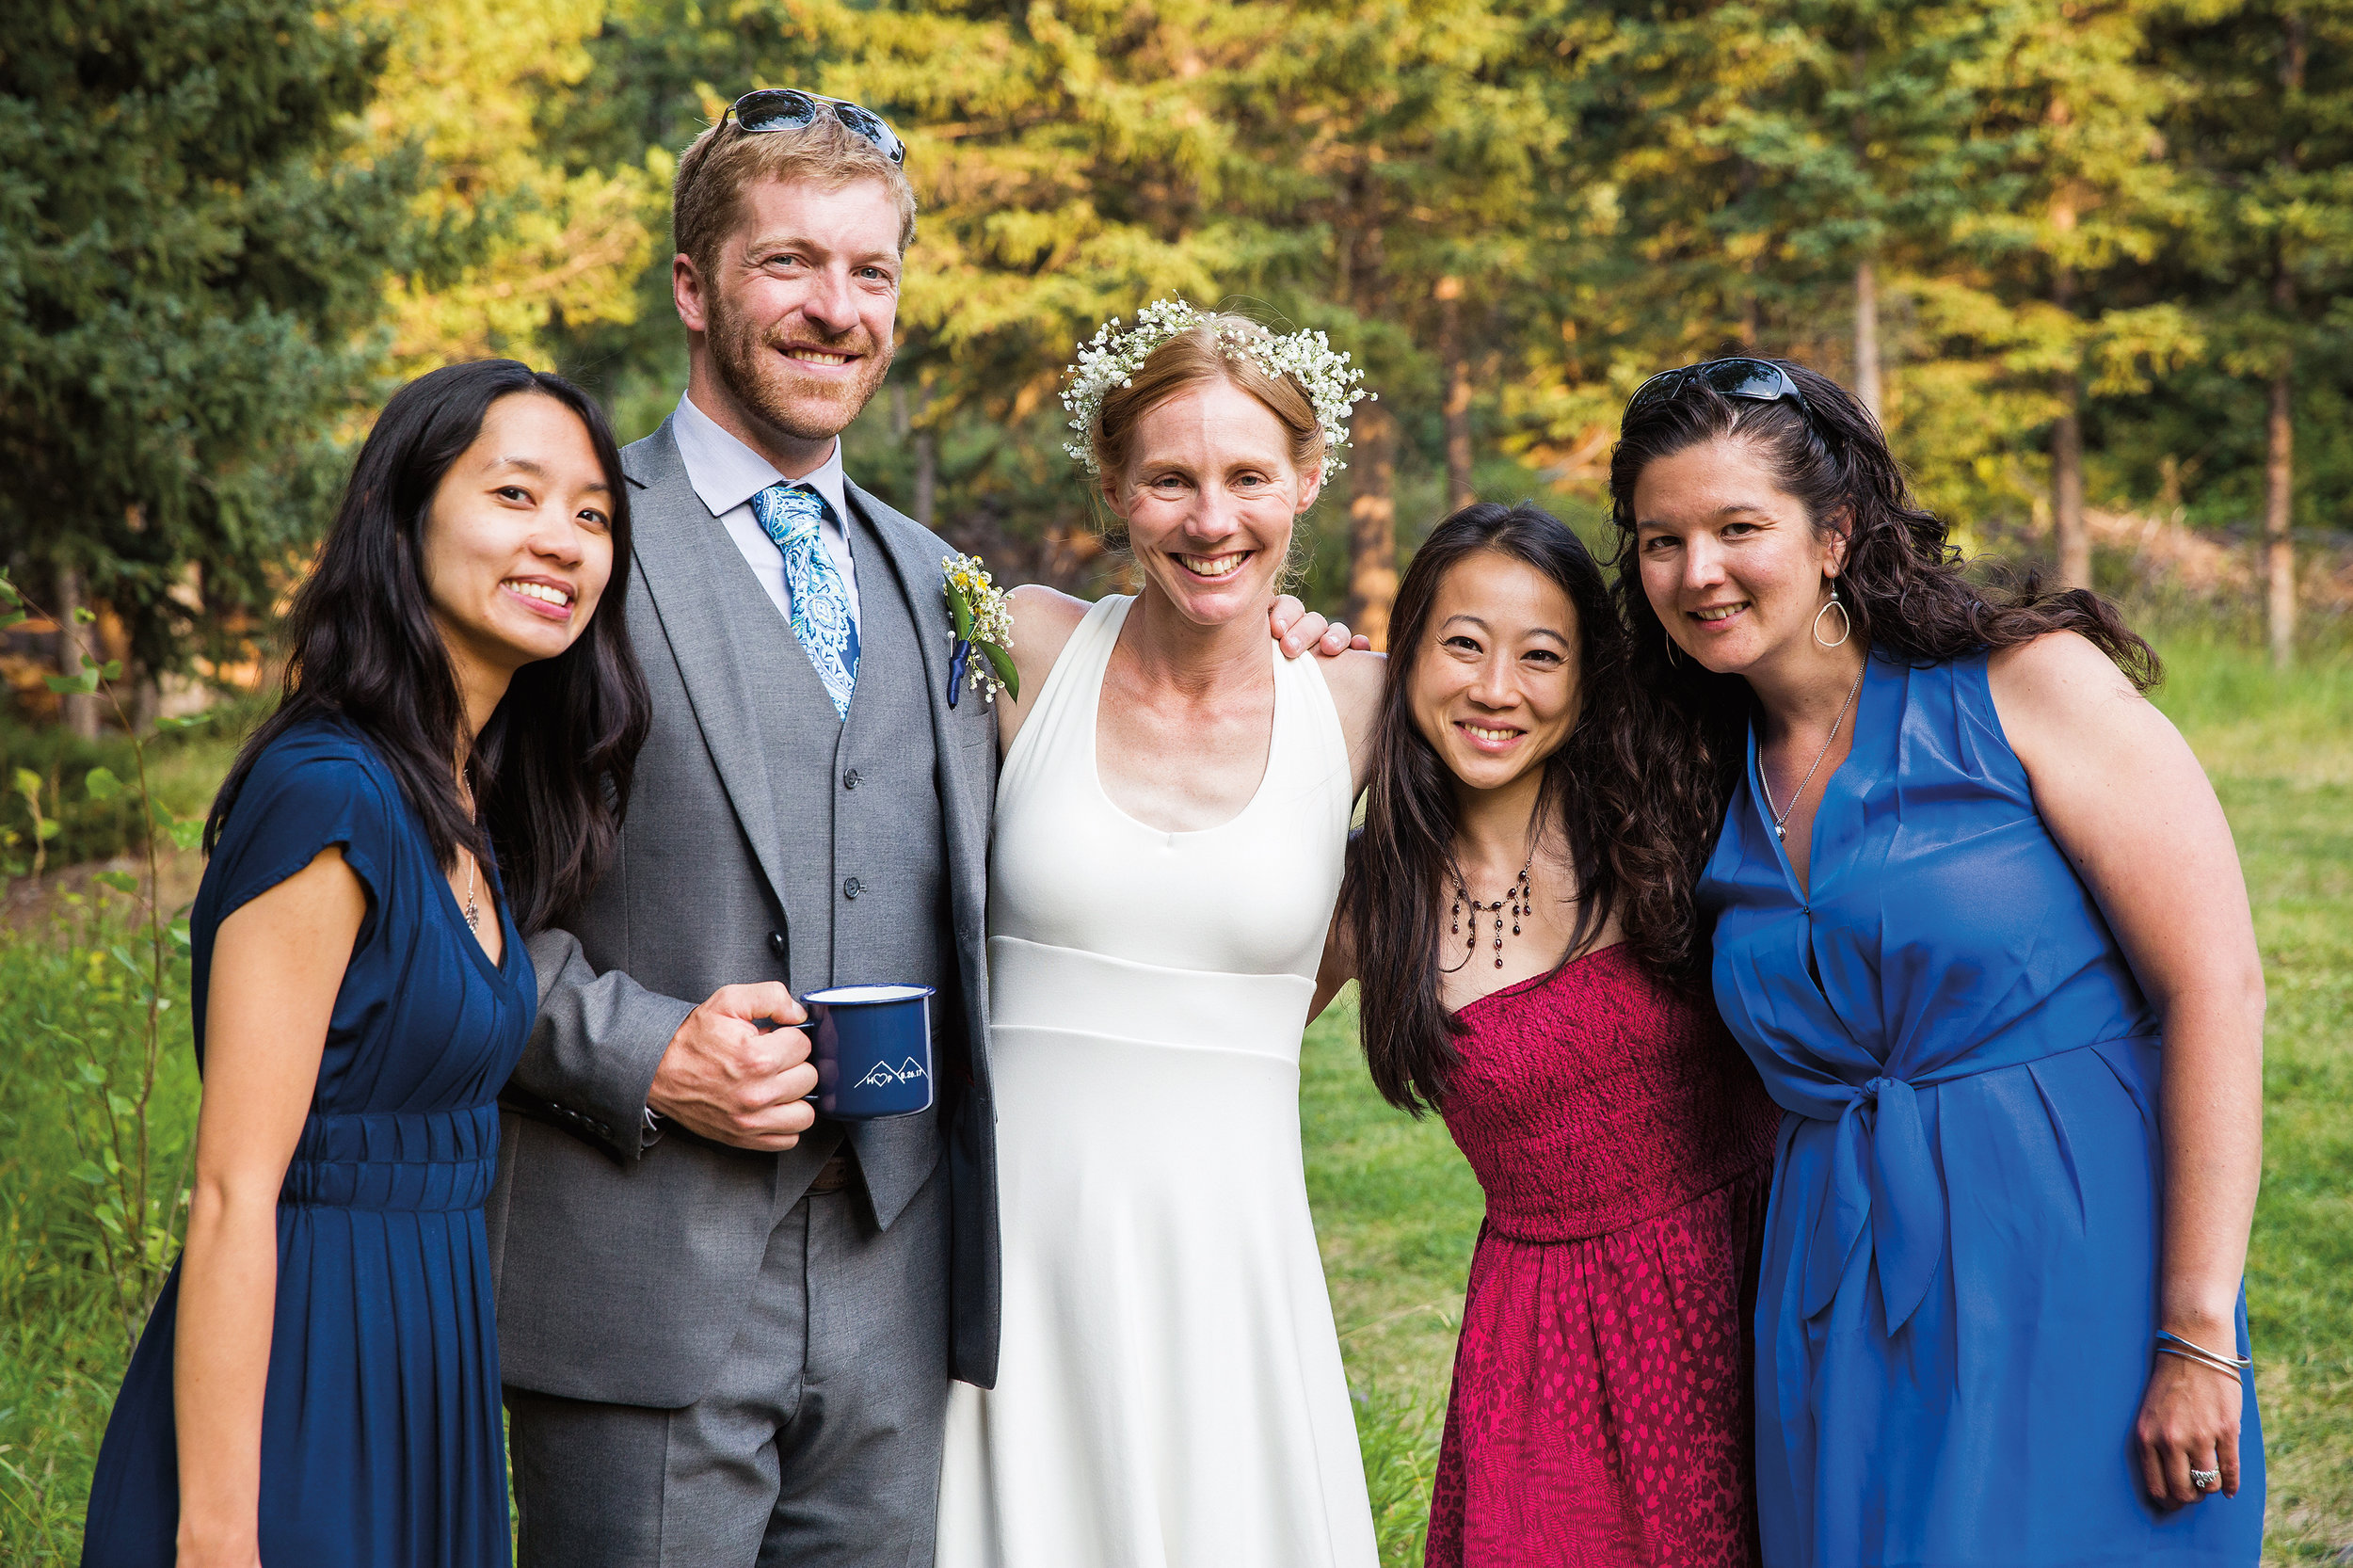 (L. to r.) Christine Louie '02, Patrick Cross, Hilary Eisen '02, Ginni Chen '02, and Kristen (Deane) Campbell '02, celebrating Hilary and Patrick's wedding in Red Lodge, Mont.